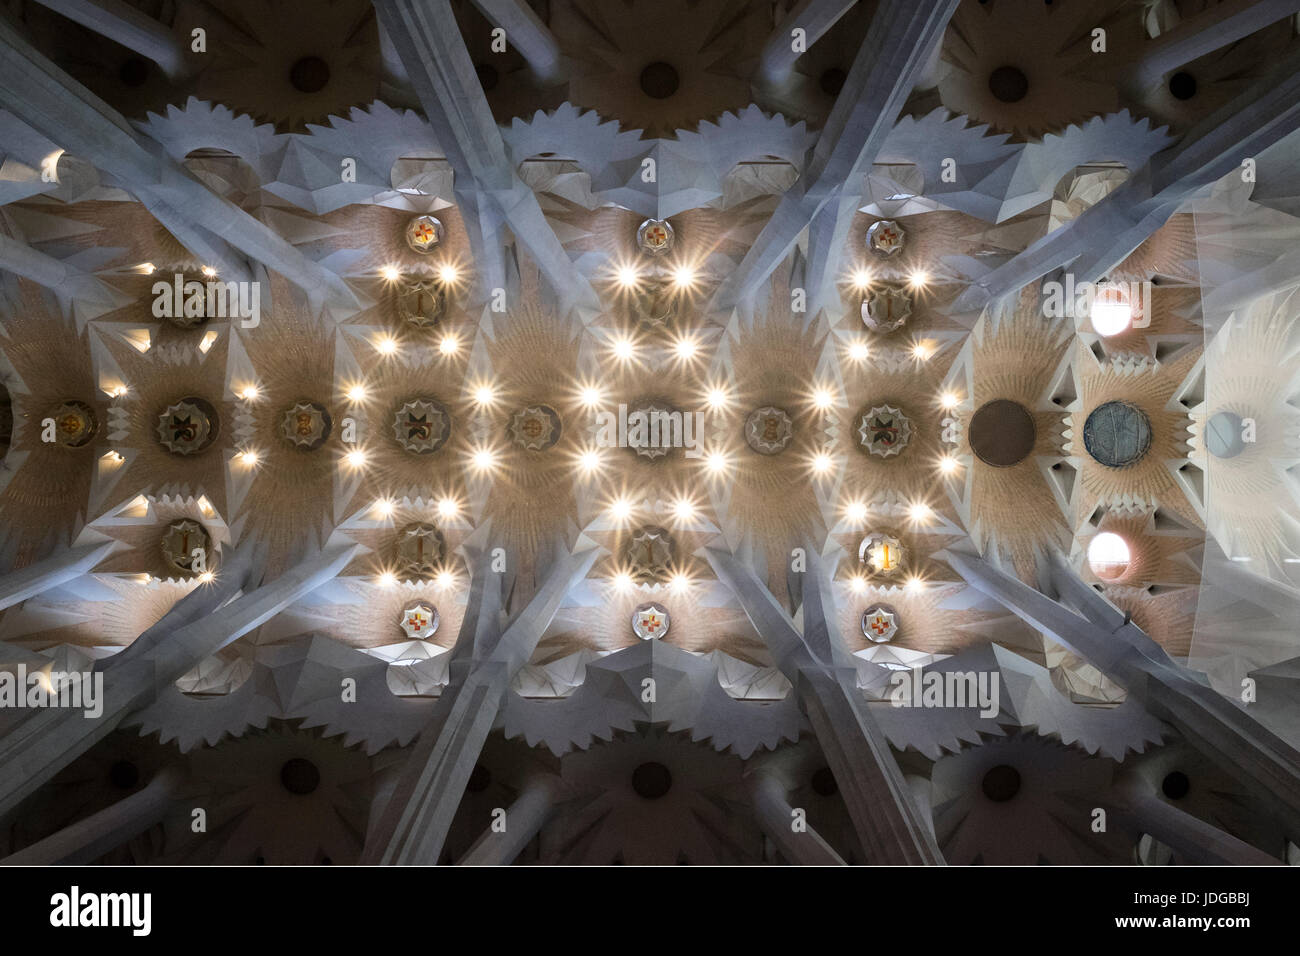 La Sagrada Familia, Barcelona, Catalonia, Spain - Stock Image